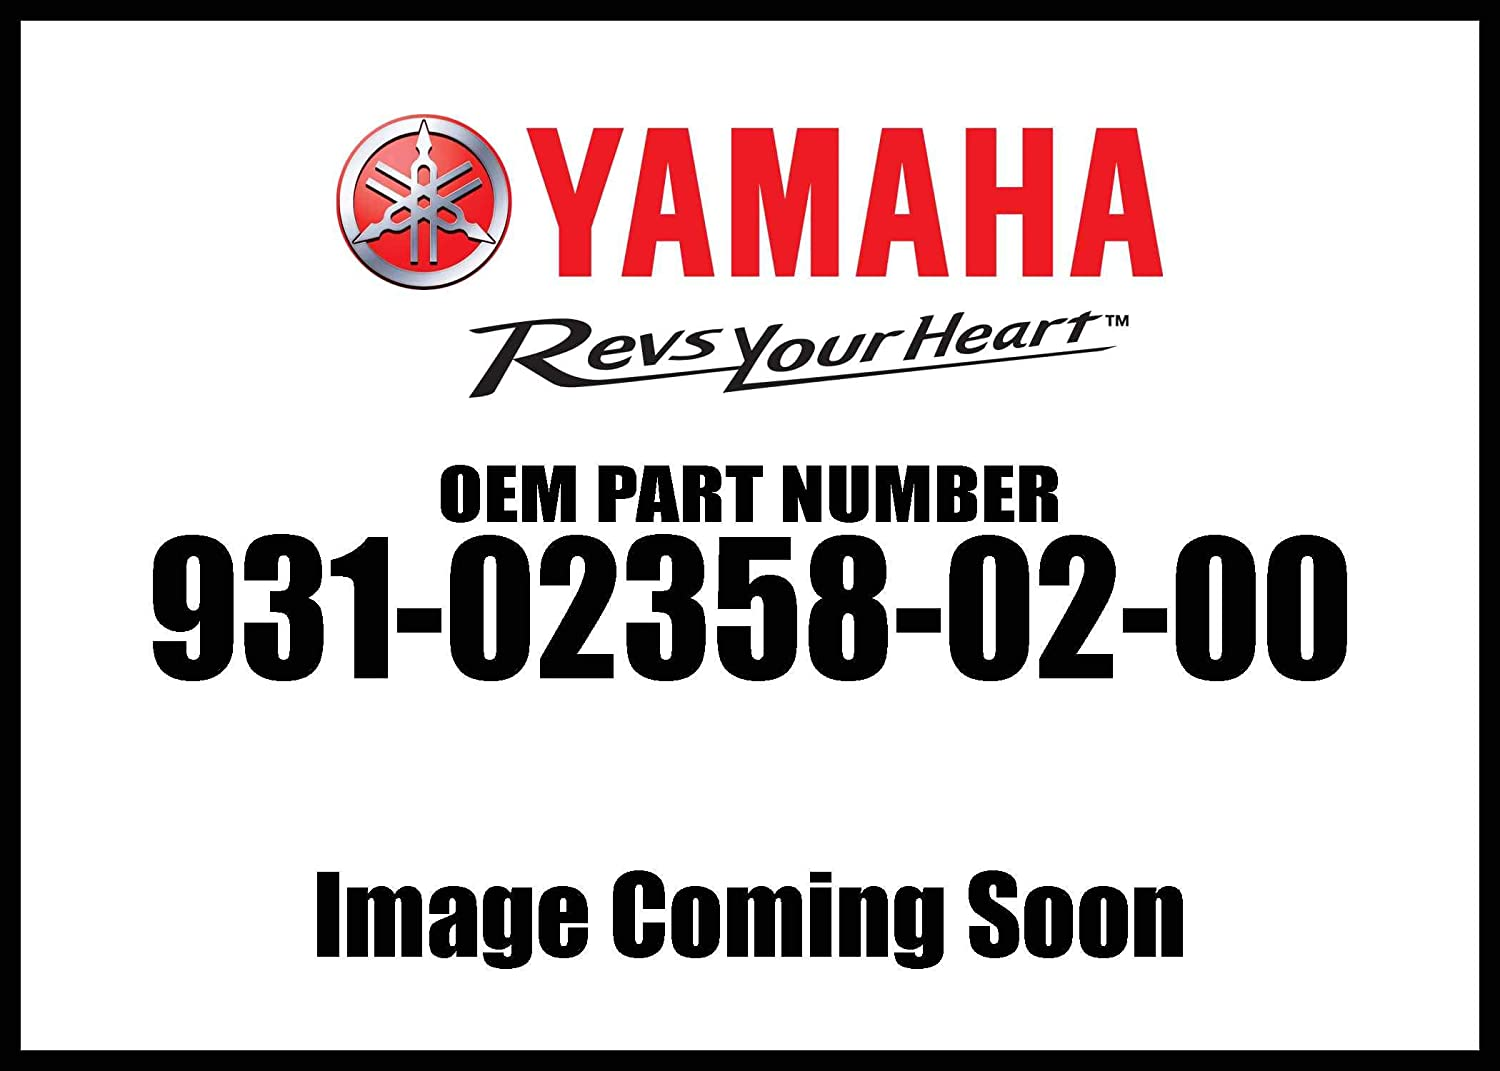 Yamaha 93102-35802-00 Oil Seal; 931023580200 Made by Yamaha